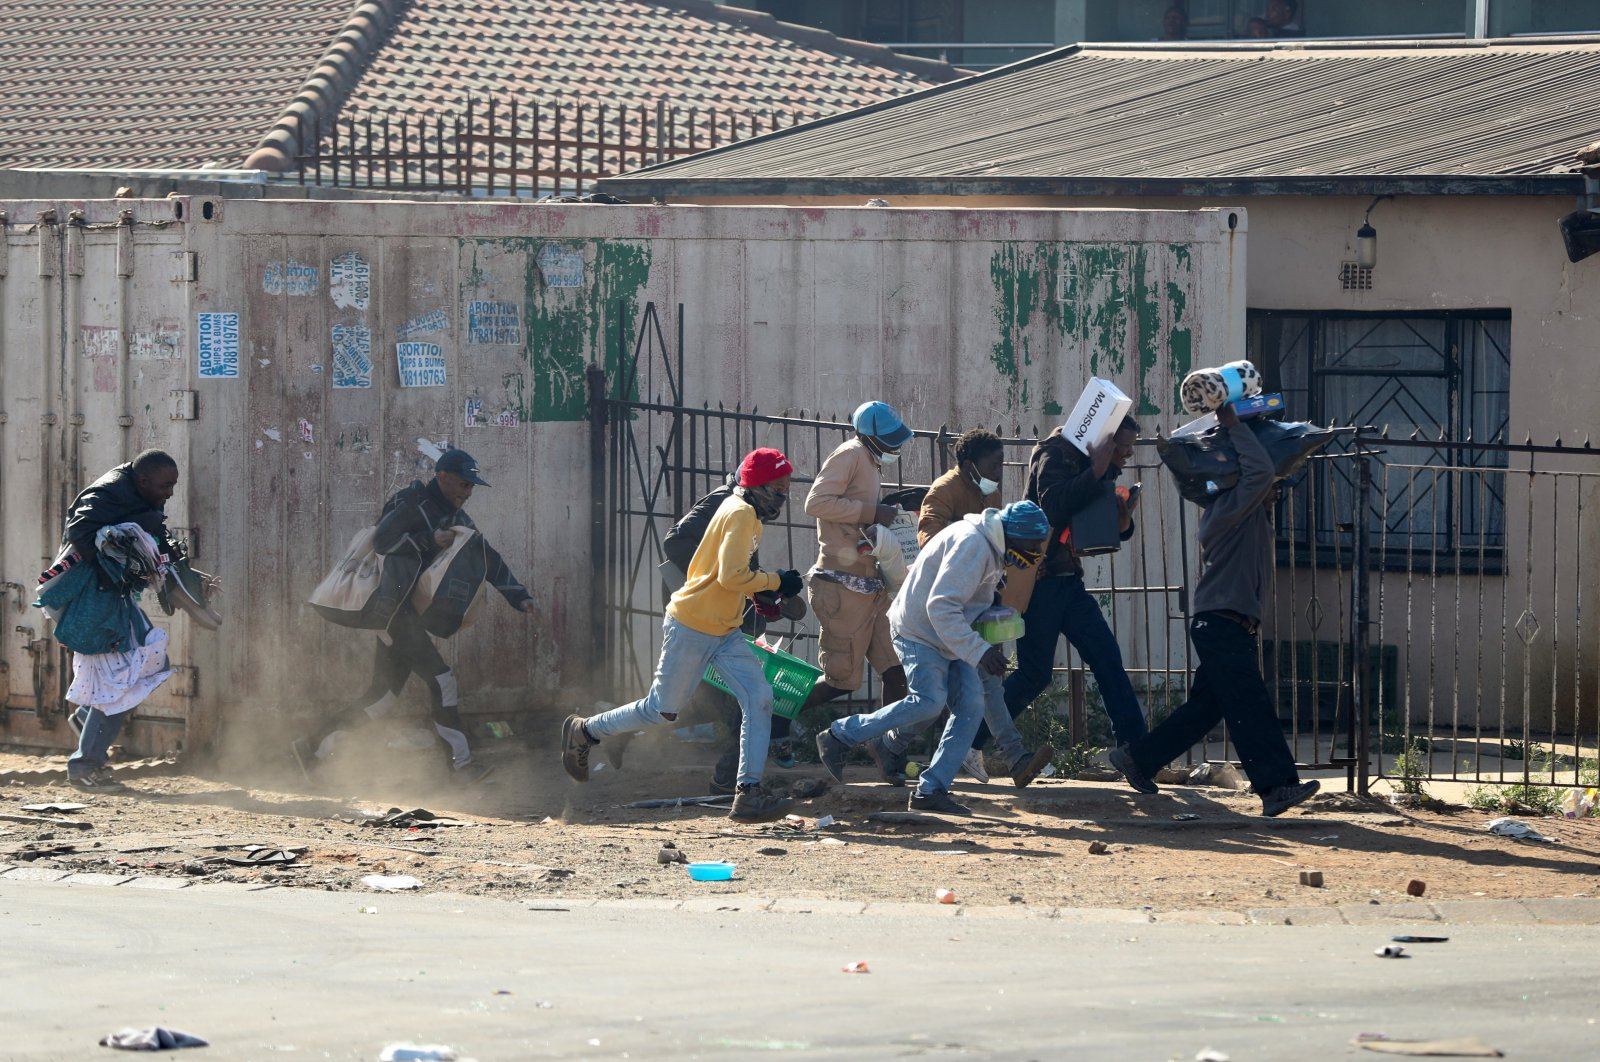 People run with looted goods, as protests continue following imprisonment of former South Africa President Jacob Zuma, in Katlehong, South Africa, July 12, 2021. (Reuters Photo)